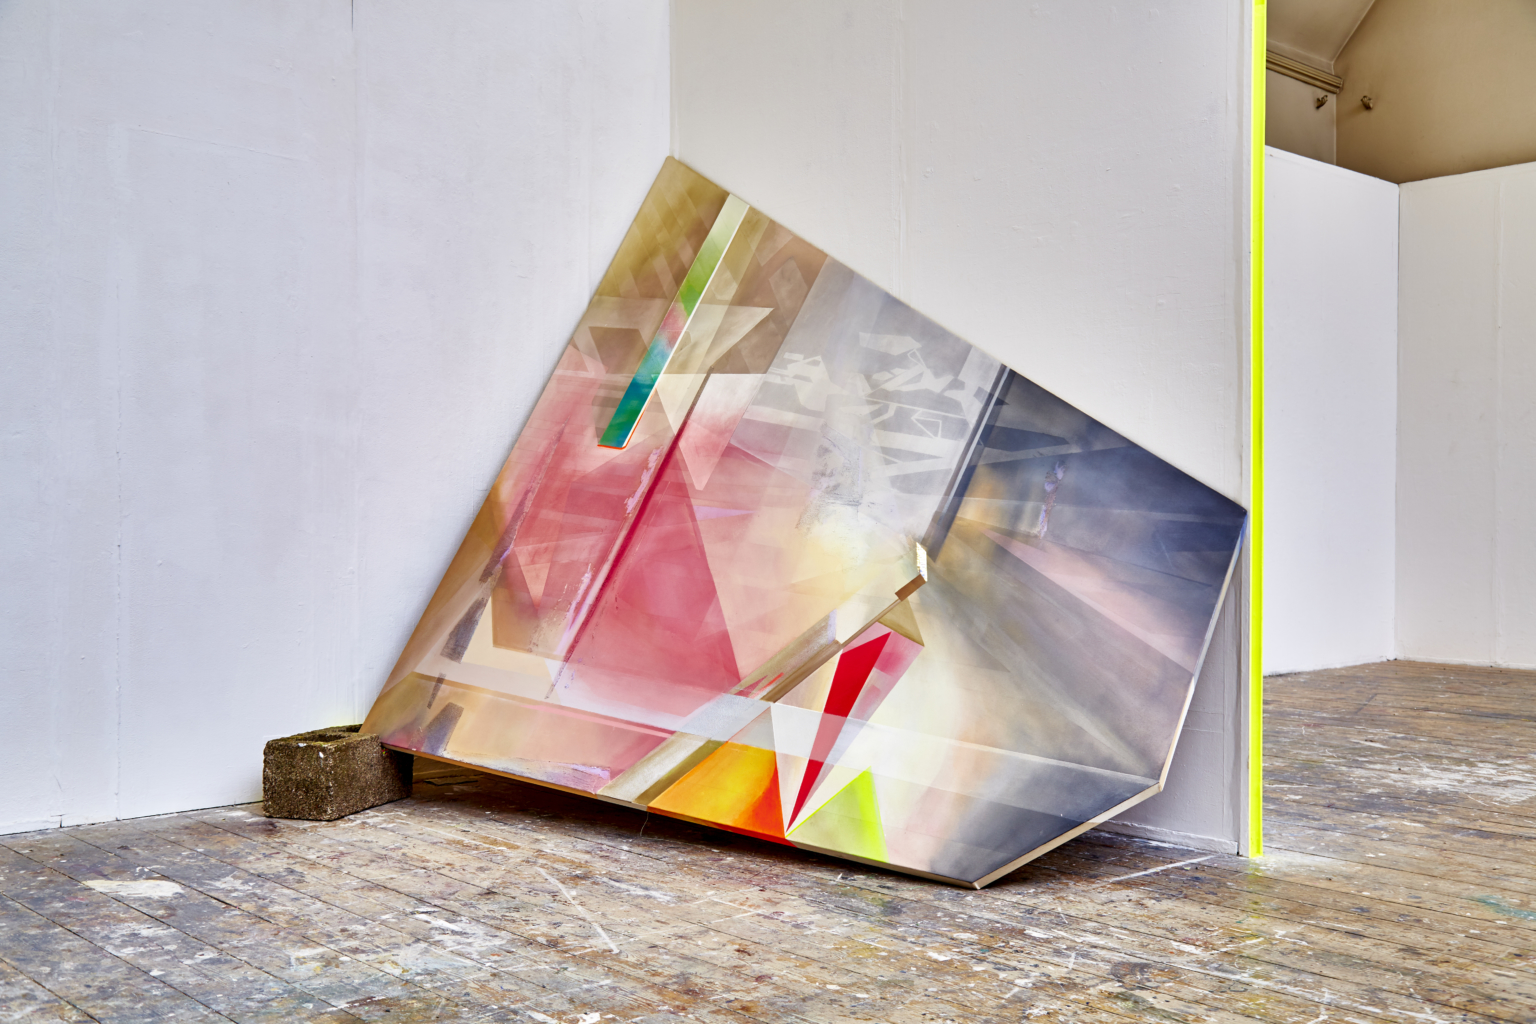 Olivia Peake, Emergence (Painting one), 2016. Photo: www.lukepickering.co.uk